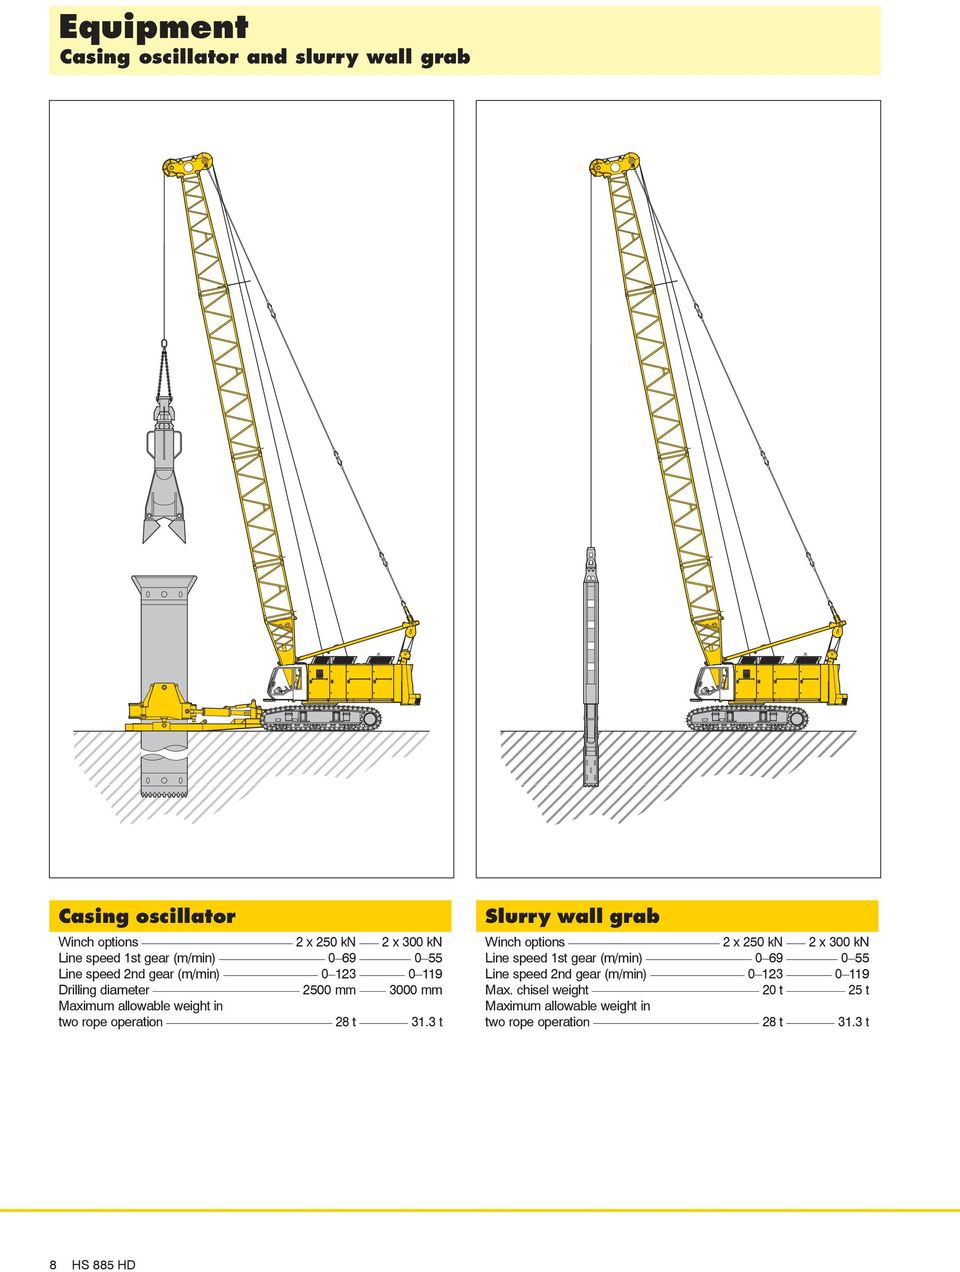 119 Drilling diameter 2500 mm 3000 mm Maximum allowable weight in two rope operation 28 t 31.